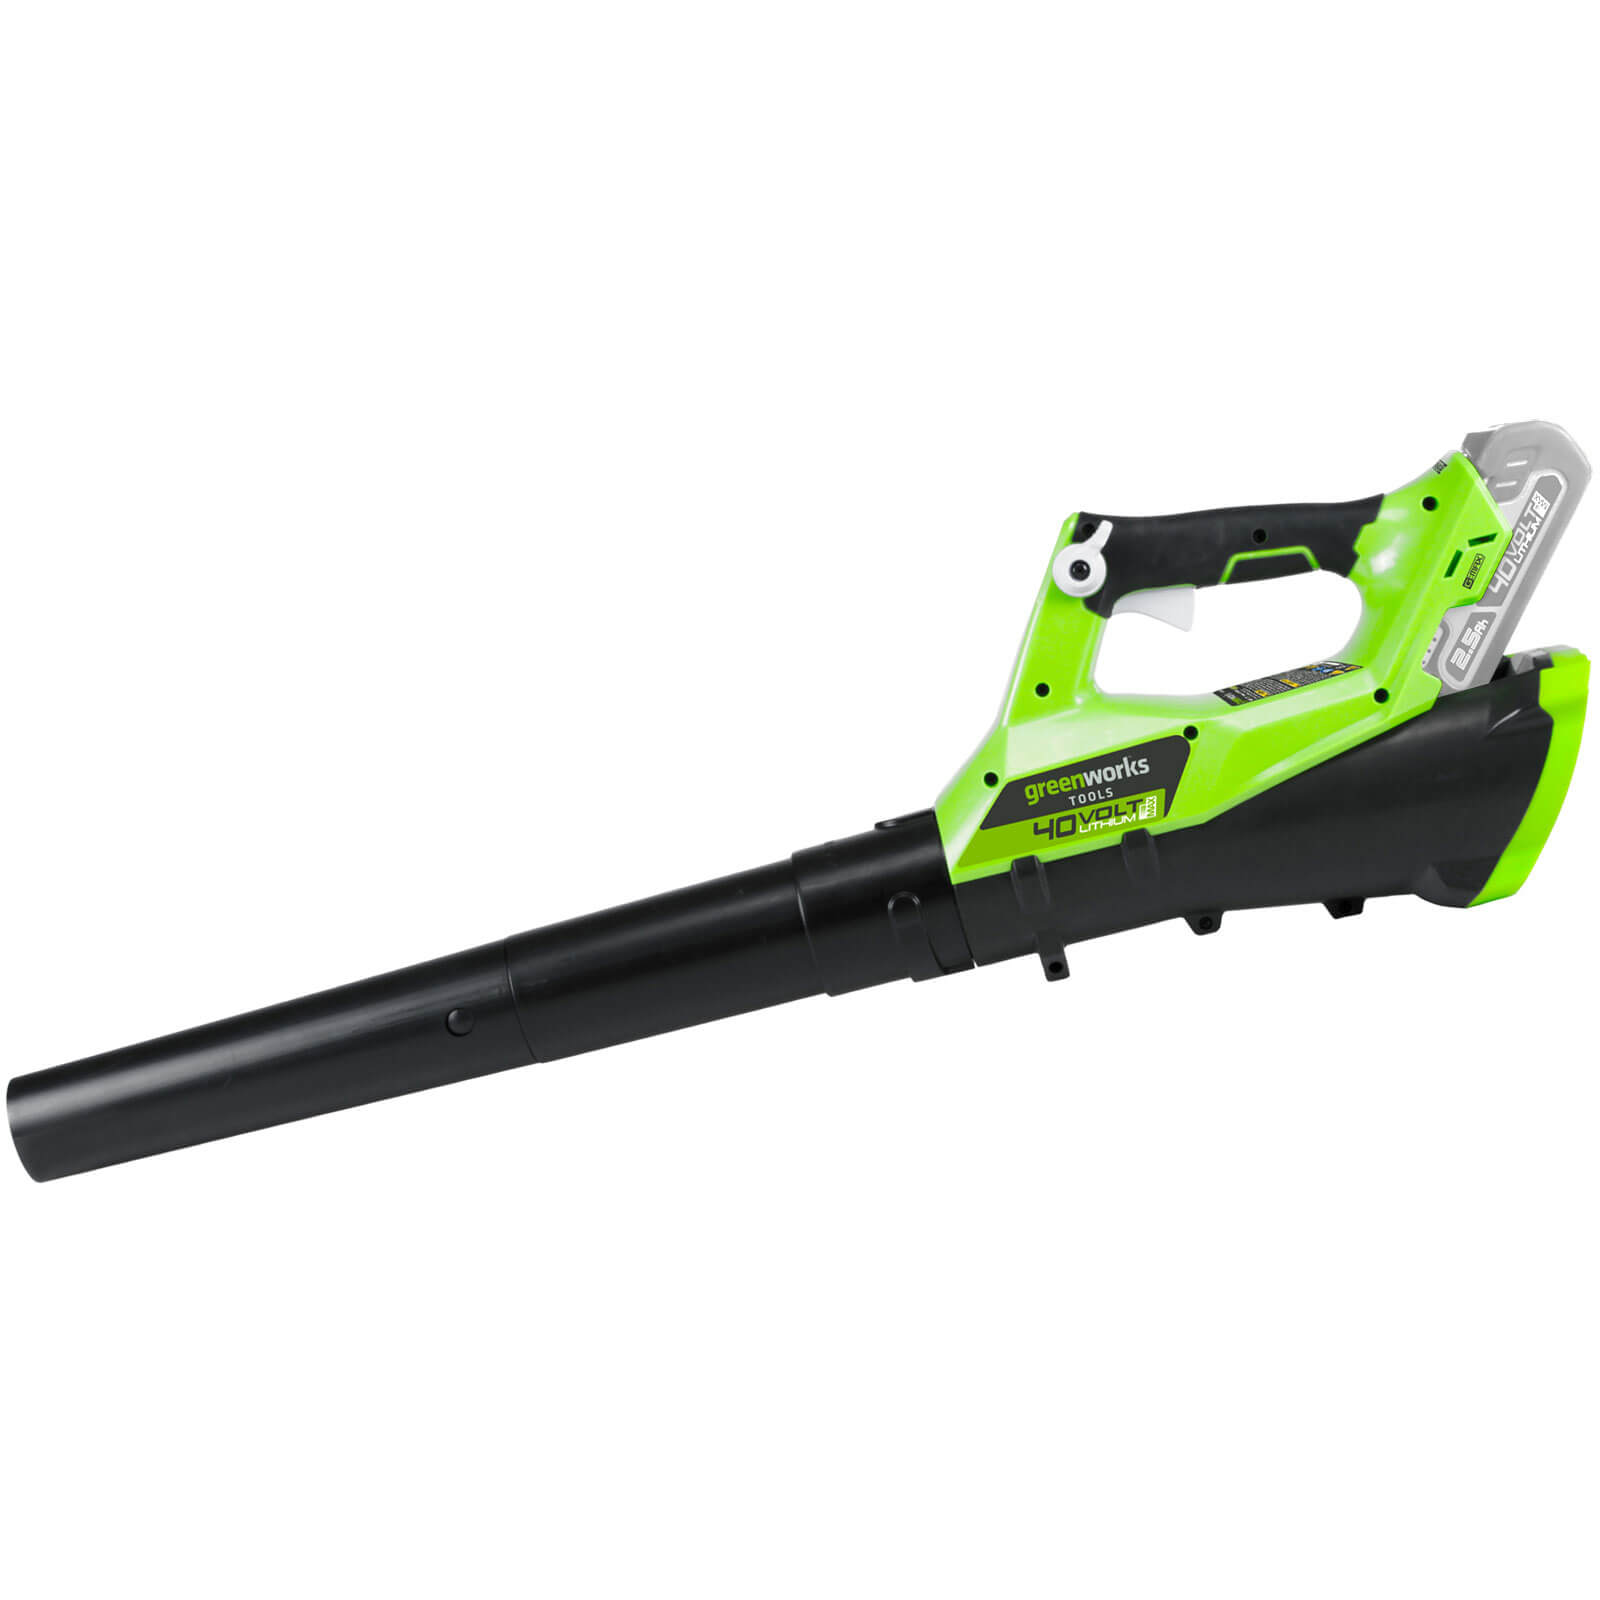 Greenworks G40AB 40v Cordless Axial Garden Leaf Blower No Batteries No Charger